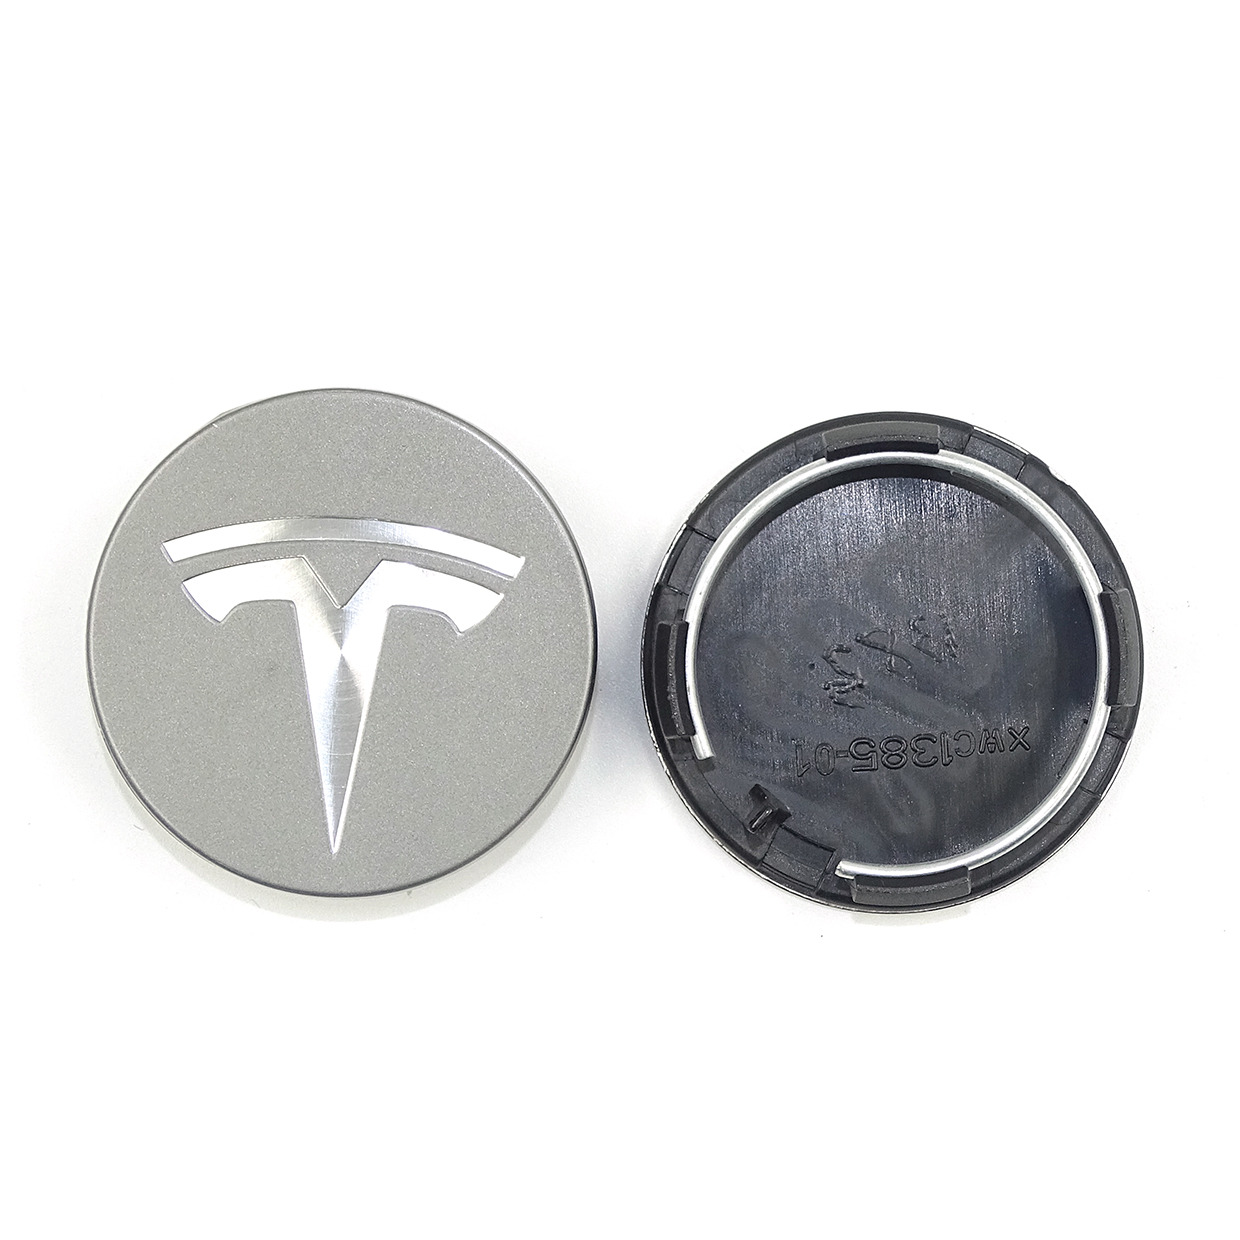 Image 4 - for TESLA MODEL X S 3 car styling XWC1385 01 Auto Accessories 56MM 58MM Badge Wheel Center cap cover emblem-in Wheel Center Caps from Automobiles & Motorcycles